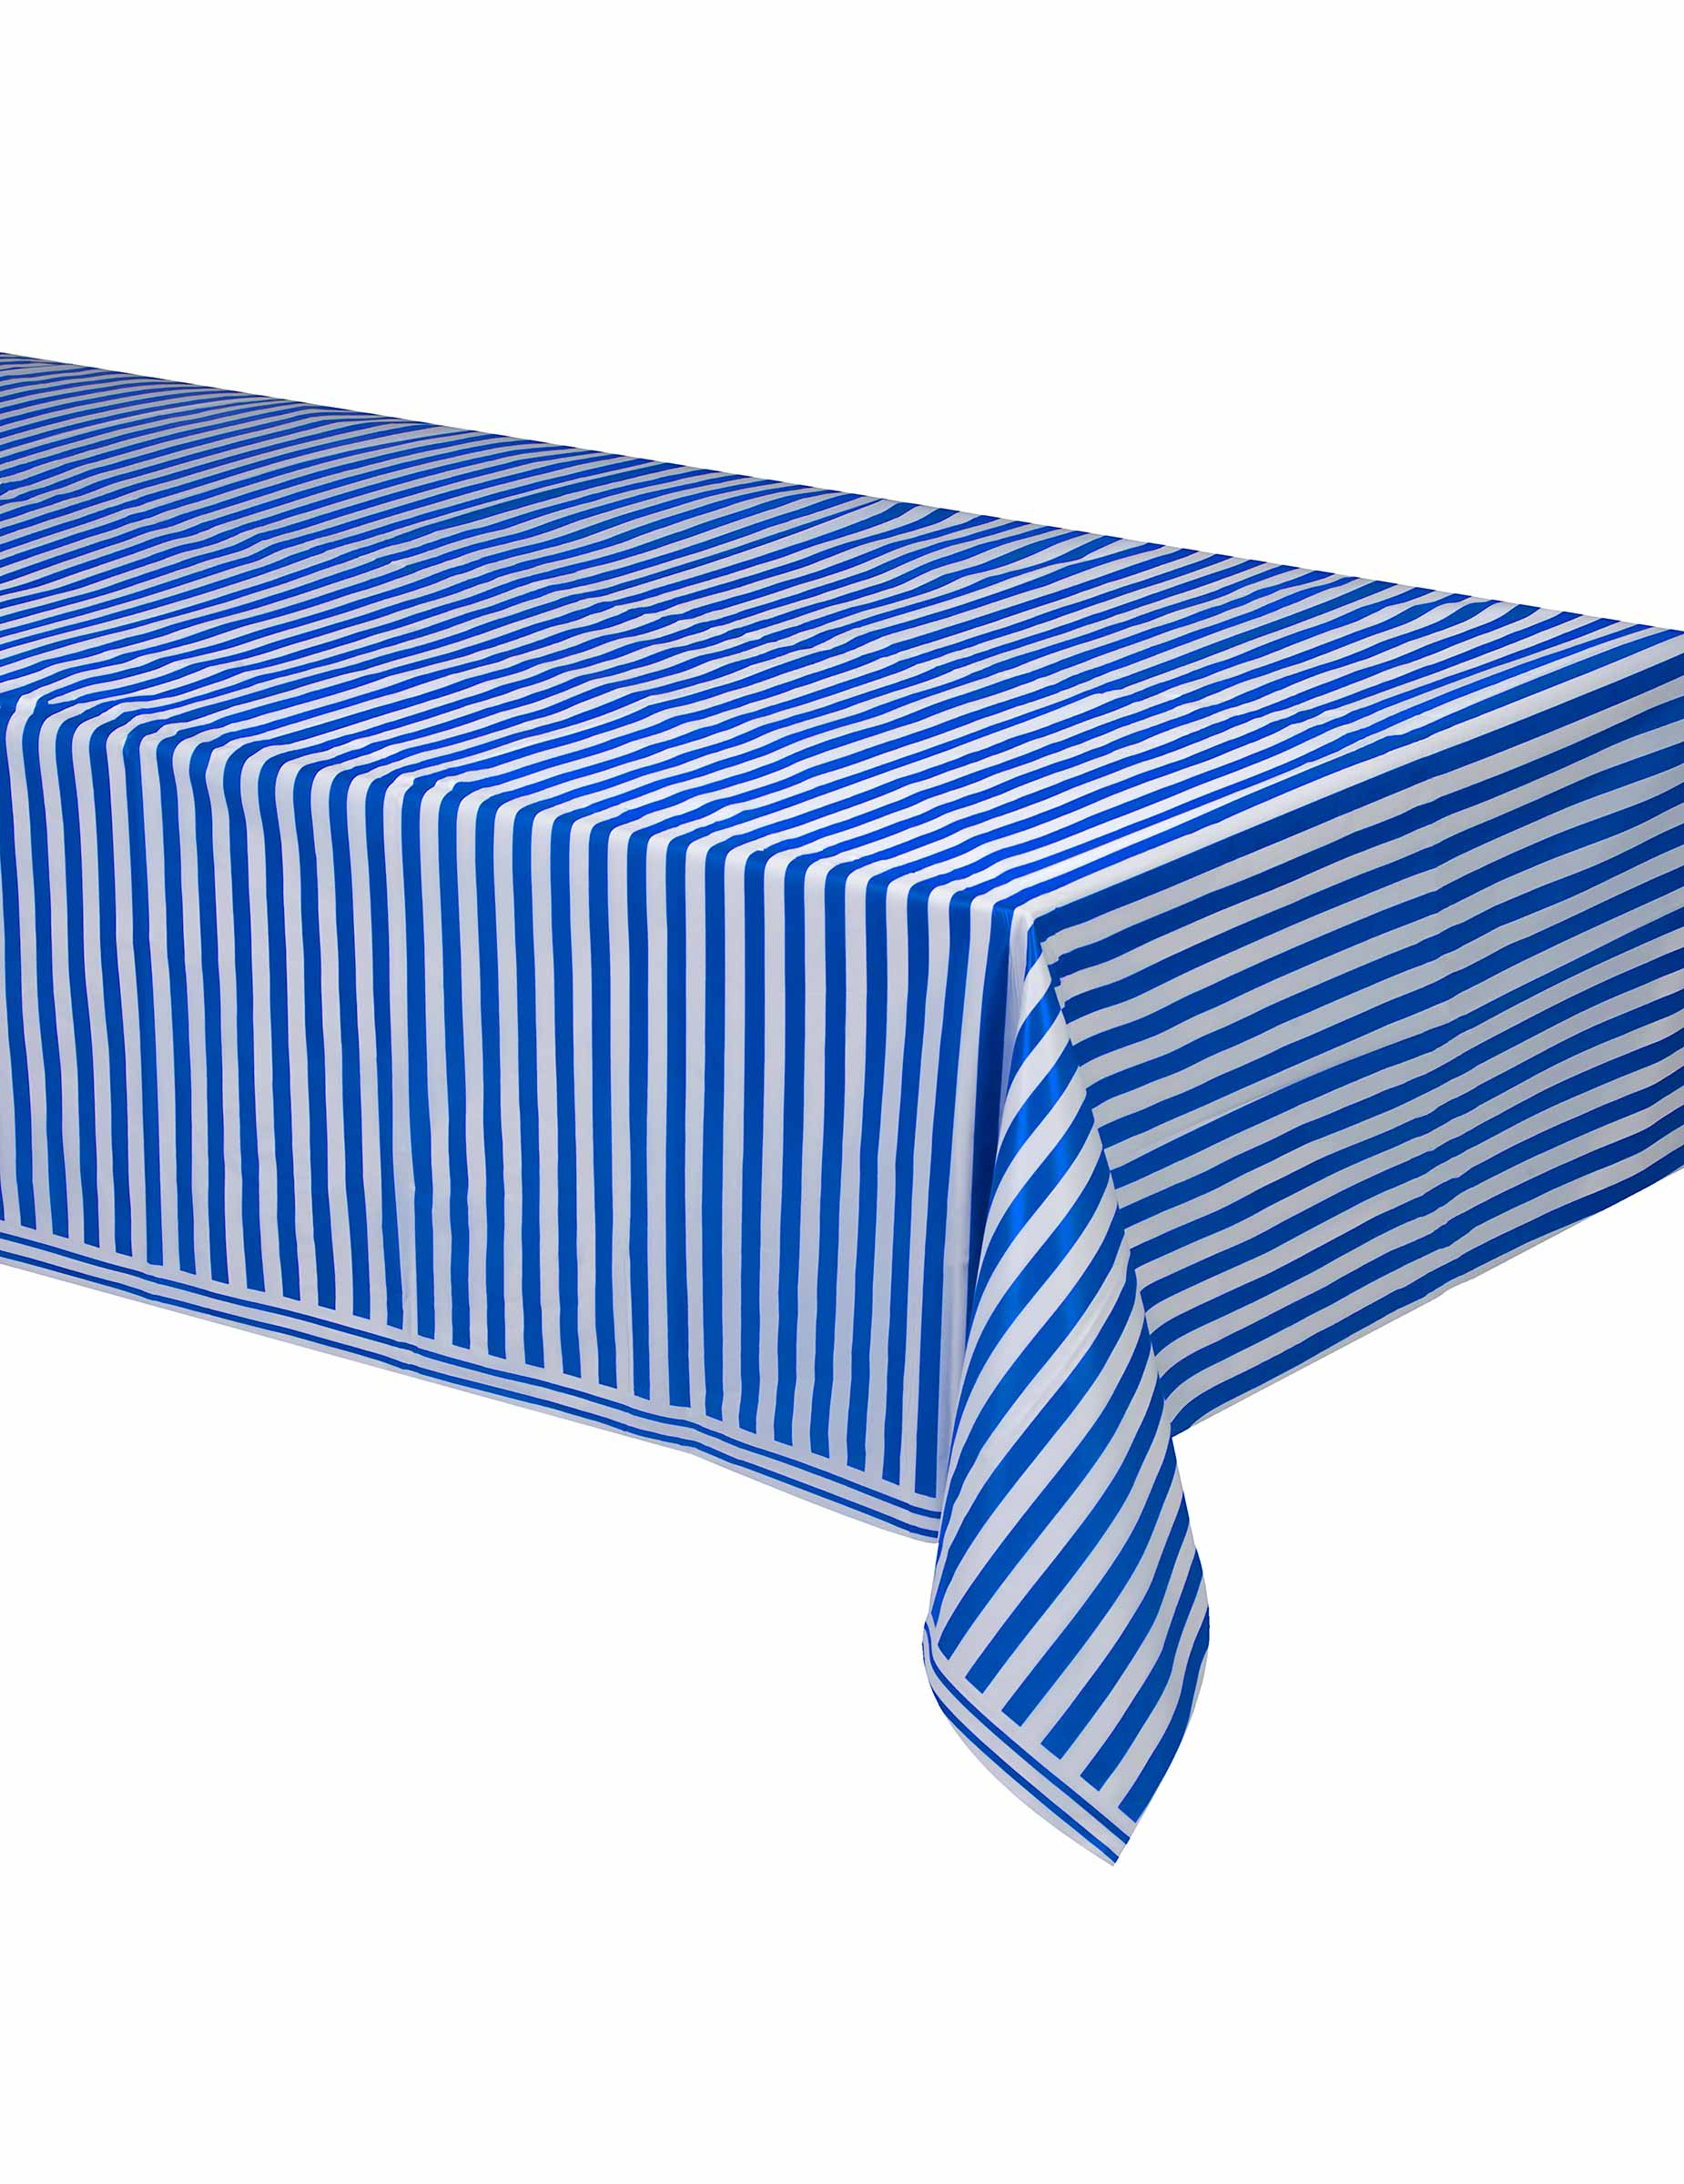 nappe plastique ray e bleue et blanche 140 x 237 cm d coration anniversaire et f tes th me. Black Bedroom Furniture Sets. Home Design Ideas